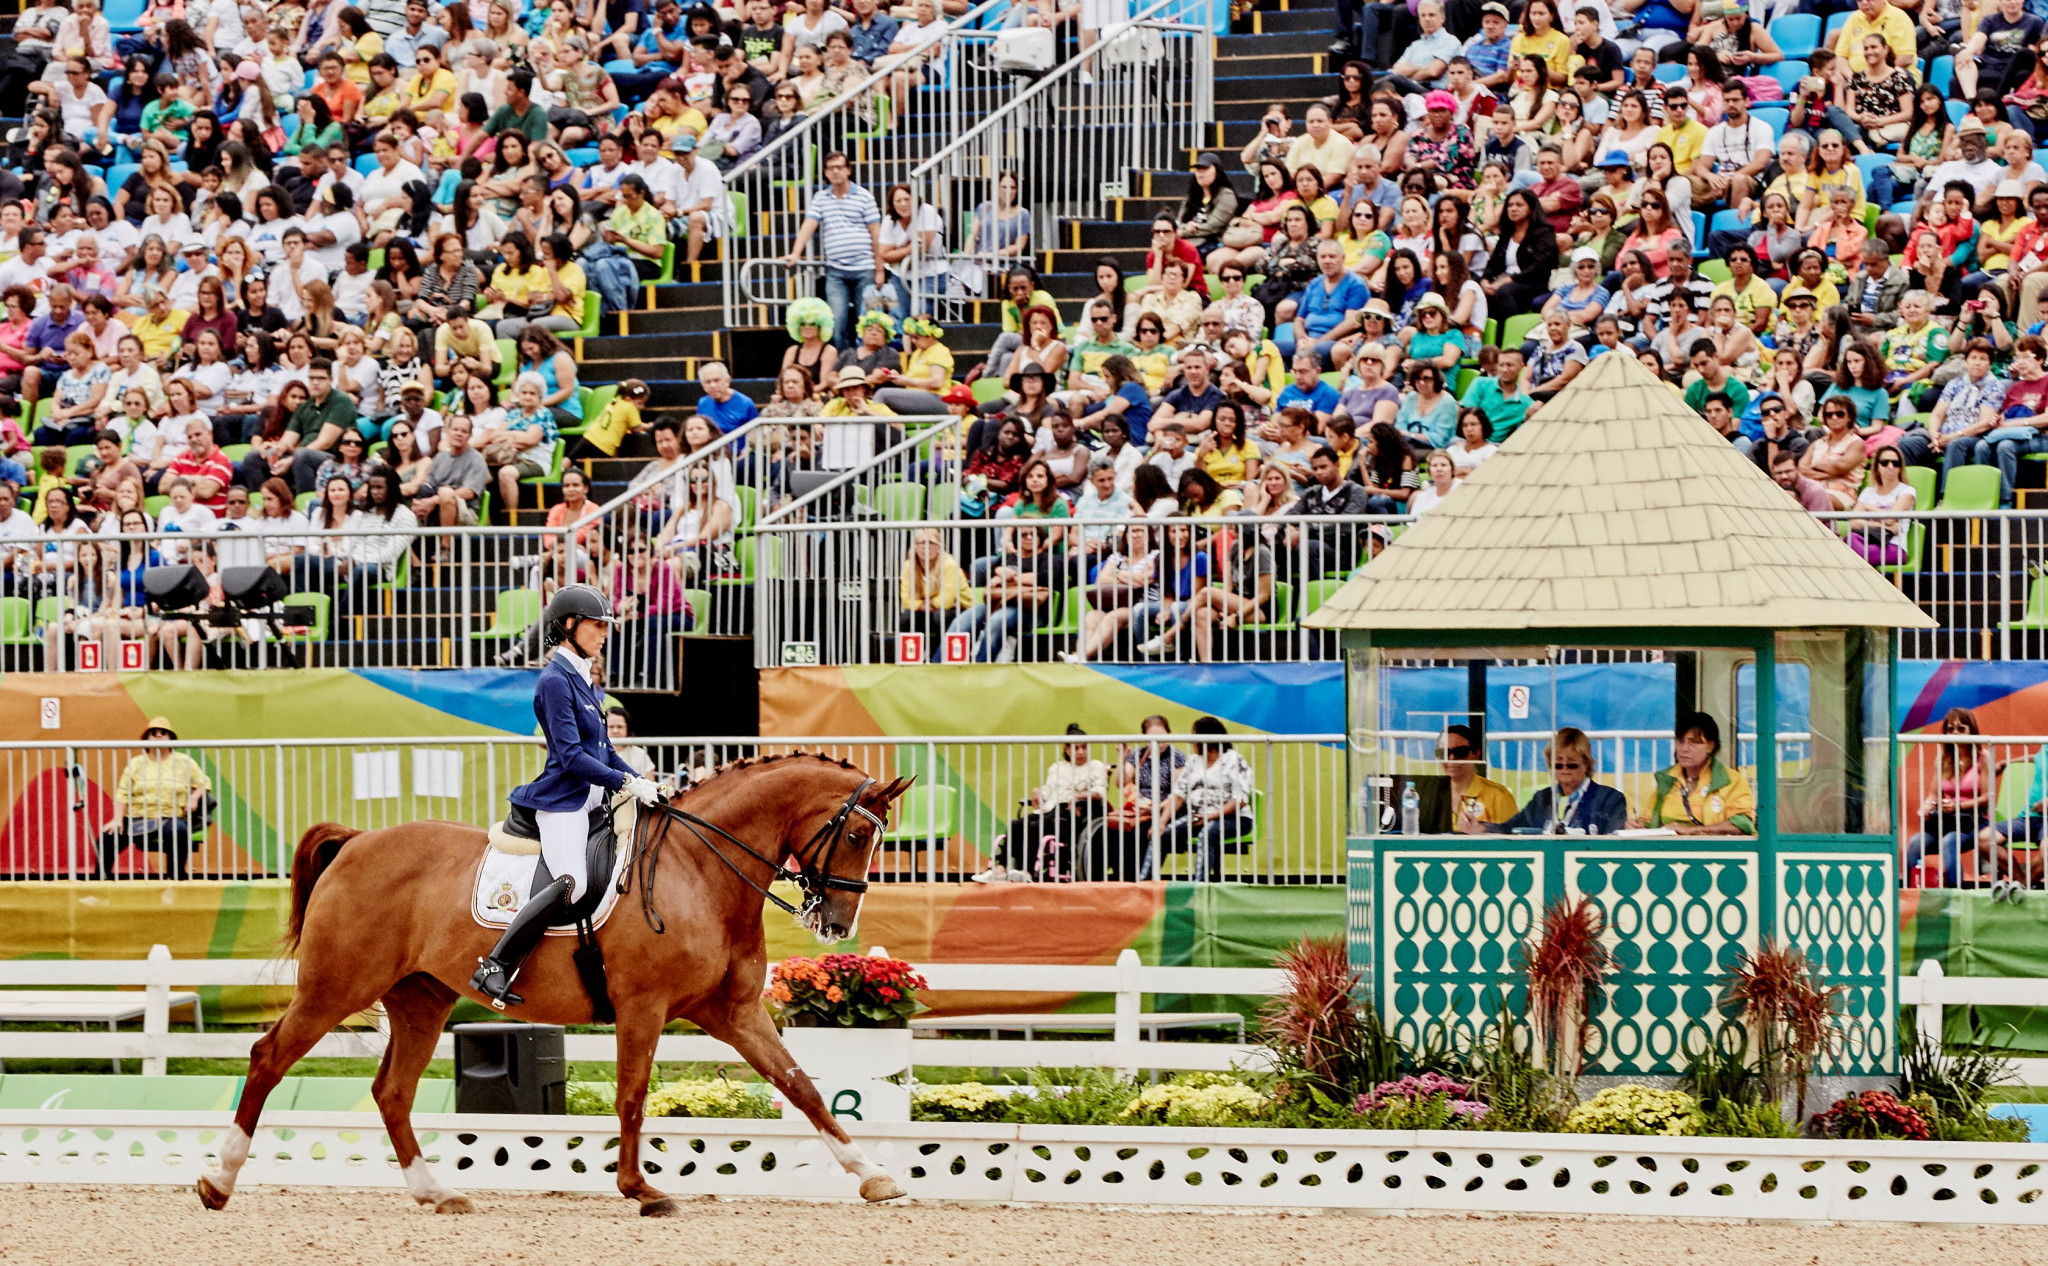 Team dressage countries confirmed for Tokyo 2020 Paralympics